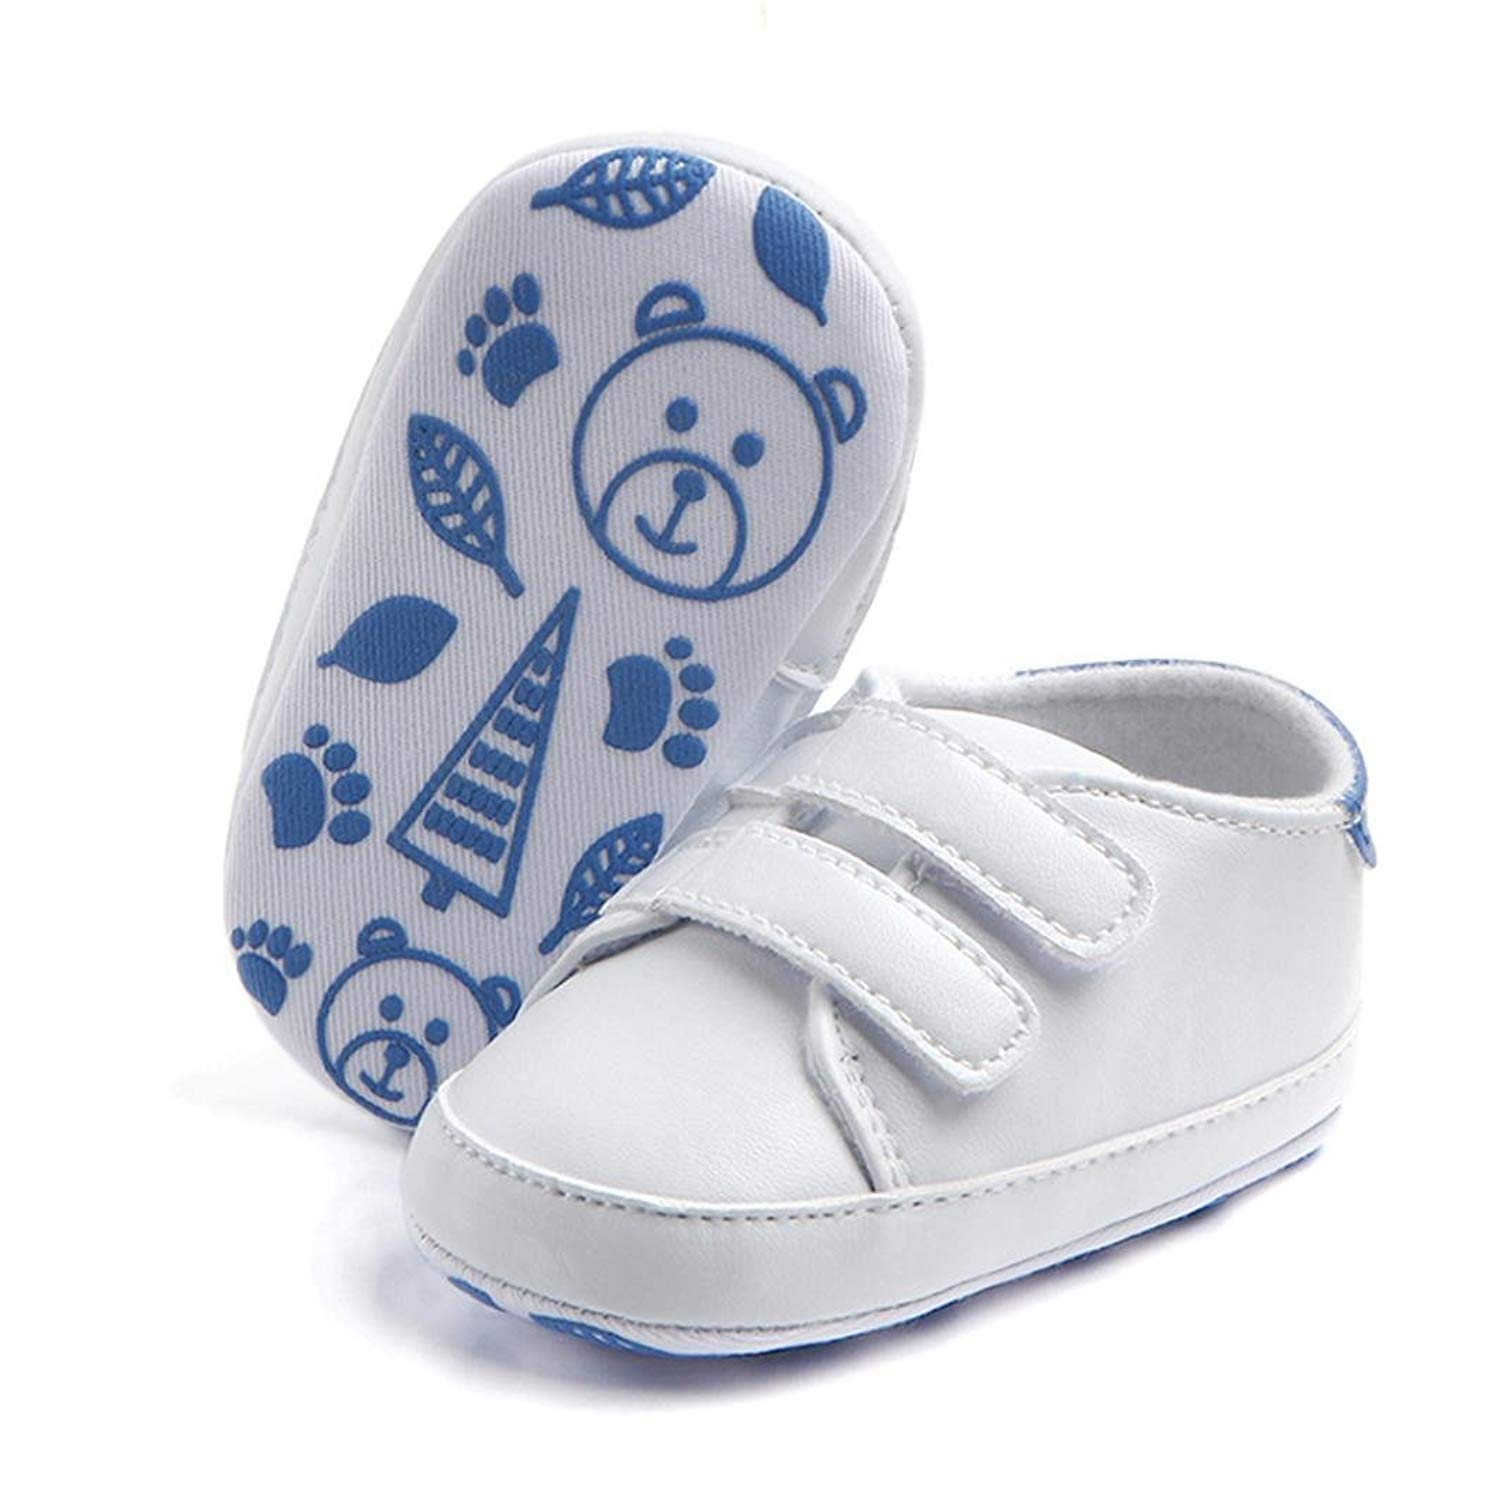 Suma-ma Paste Buckle Soft Sole Anti-Slip Sneakers Shoes For Newborn Infant Kids Baby Boys Girls 3-12M